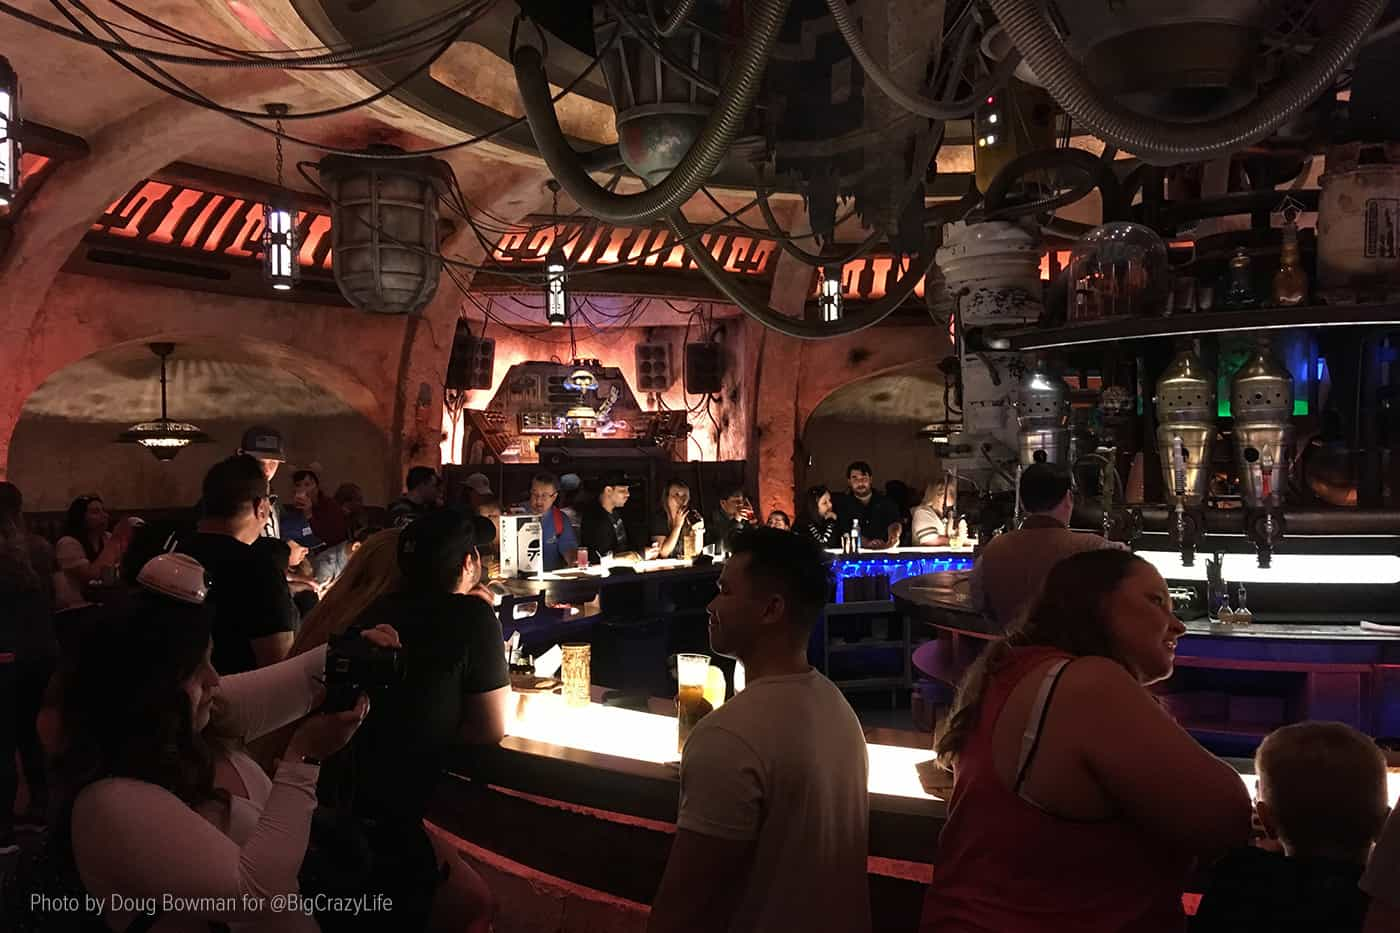 Interior shot of Oga's Cantina with the bar in the foreground and DJ R-3X spinning tunes in the background.